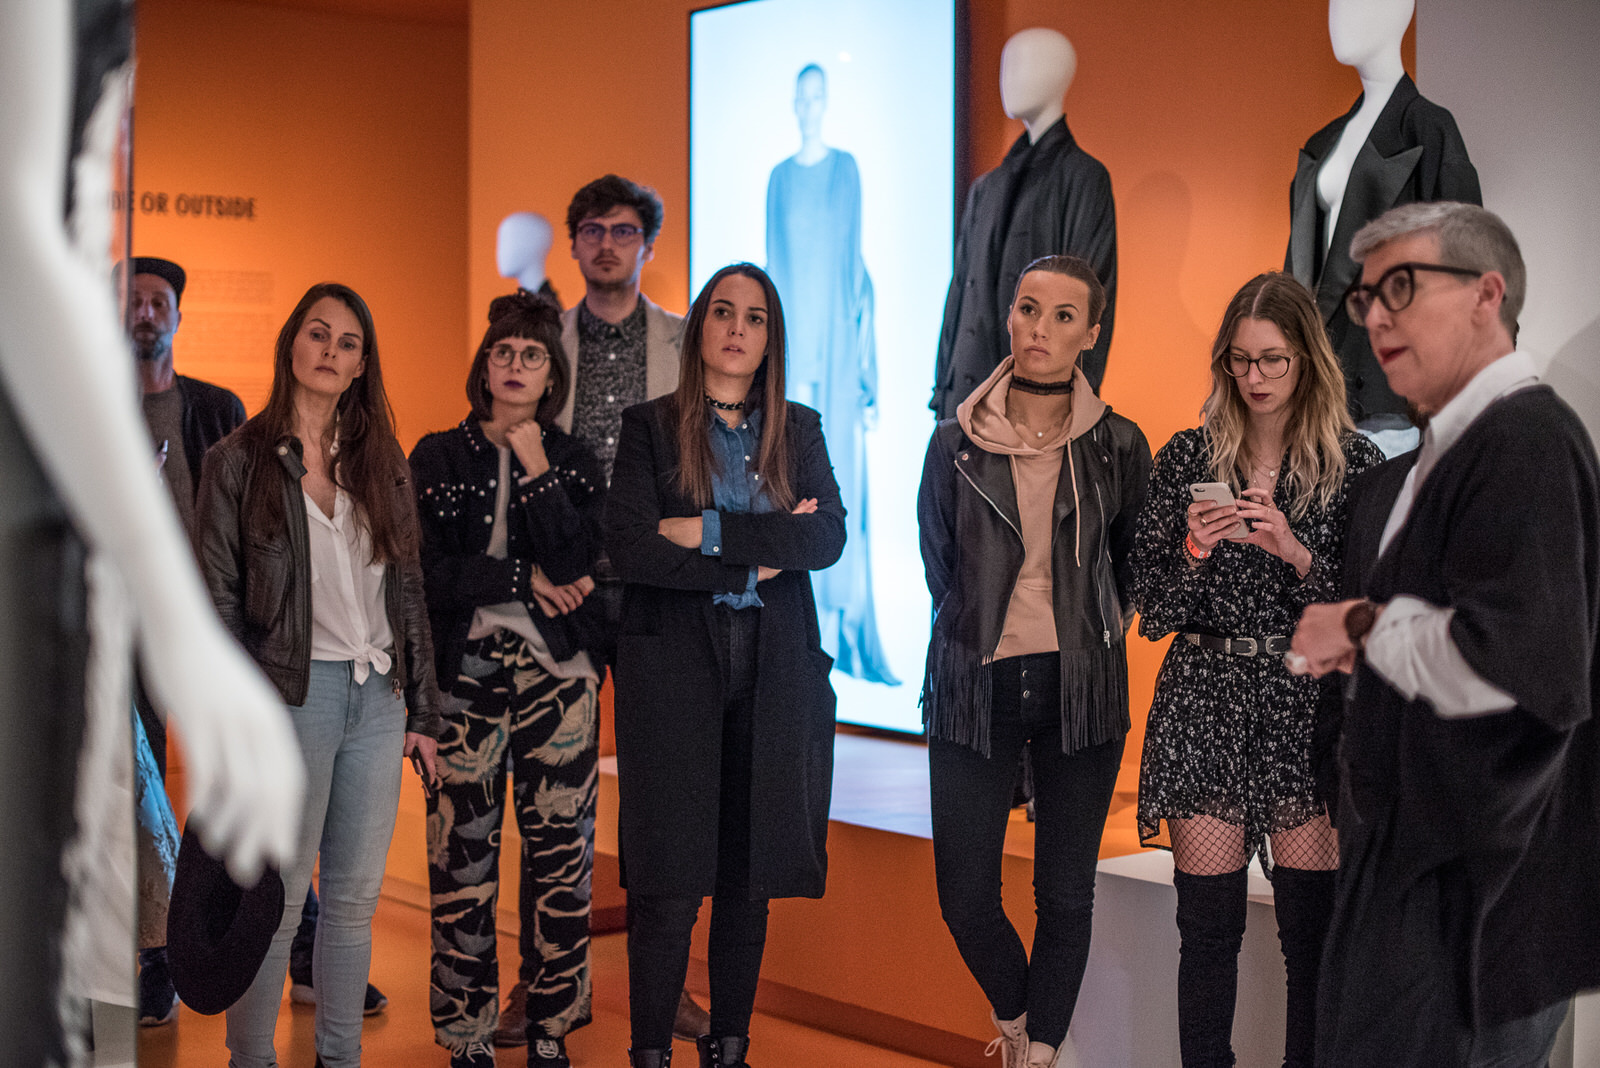 E/MOTION. Fashion in transition – secondary & higher education